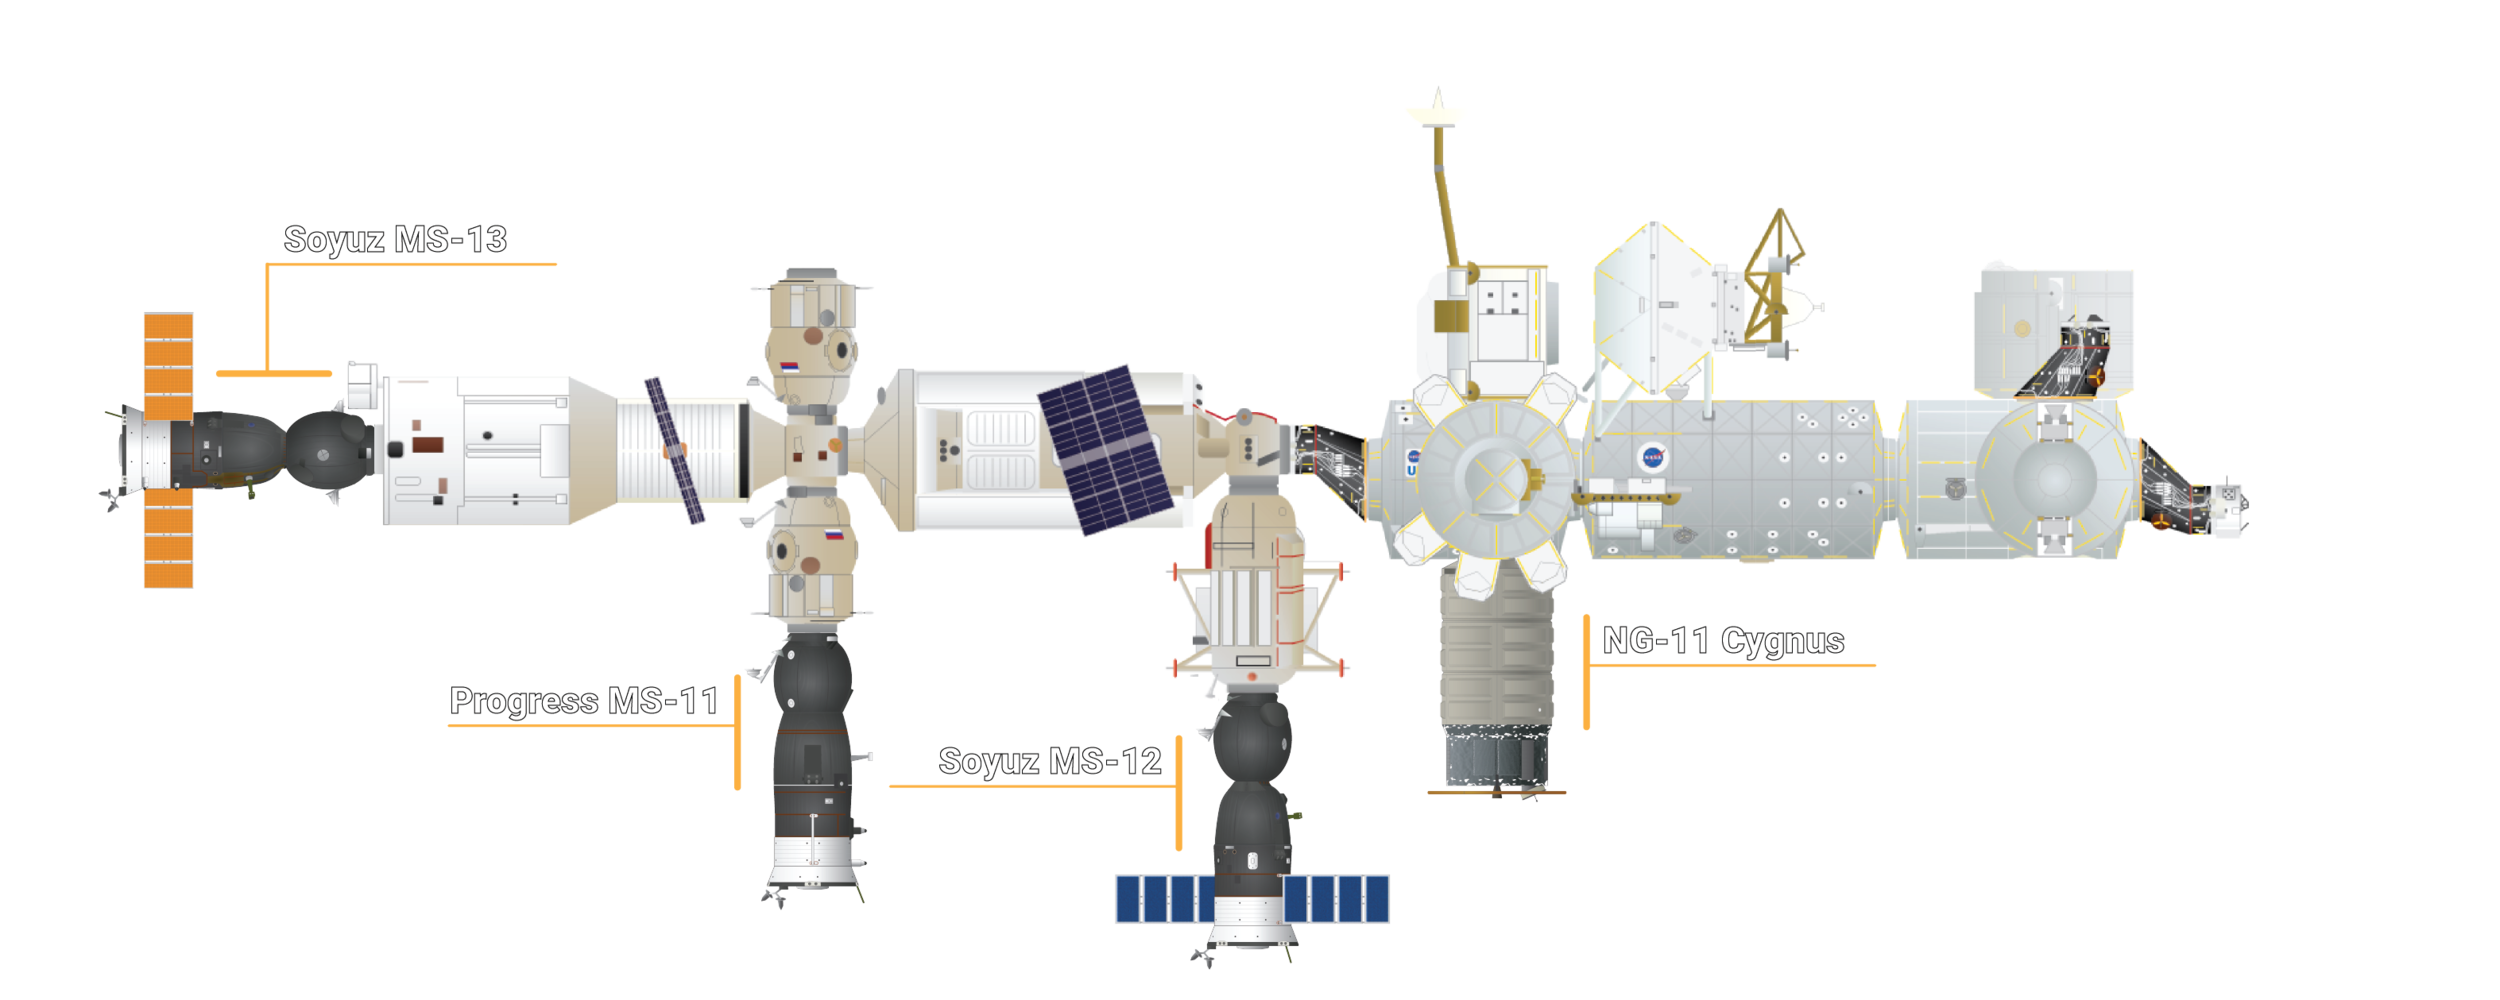 The docking configuration of the ISS after the arrival of Soyuz MS-13. Credit: Orbital Velocity